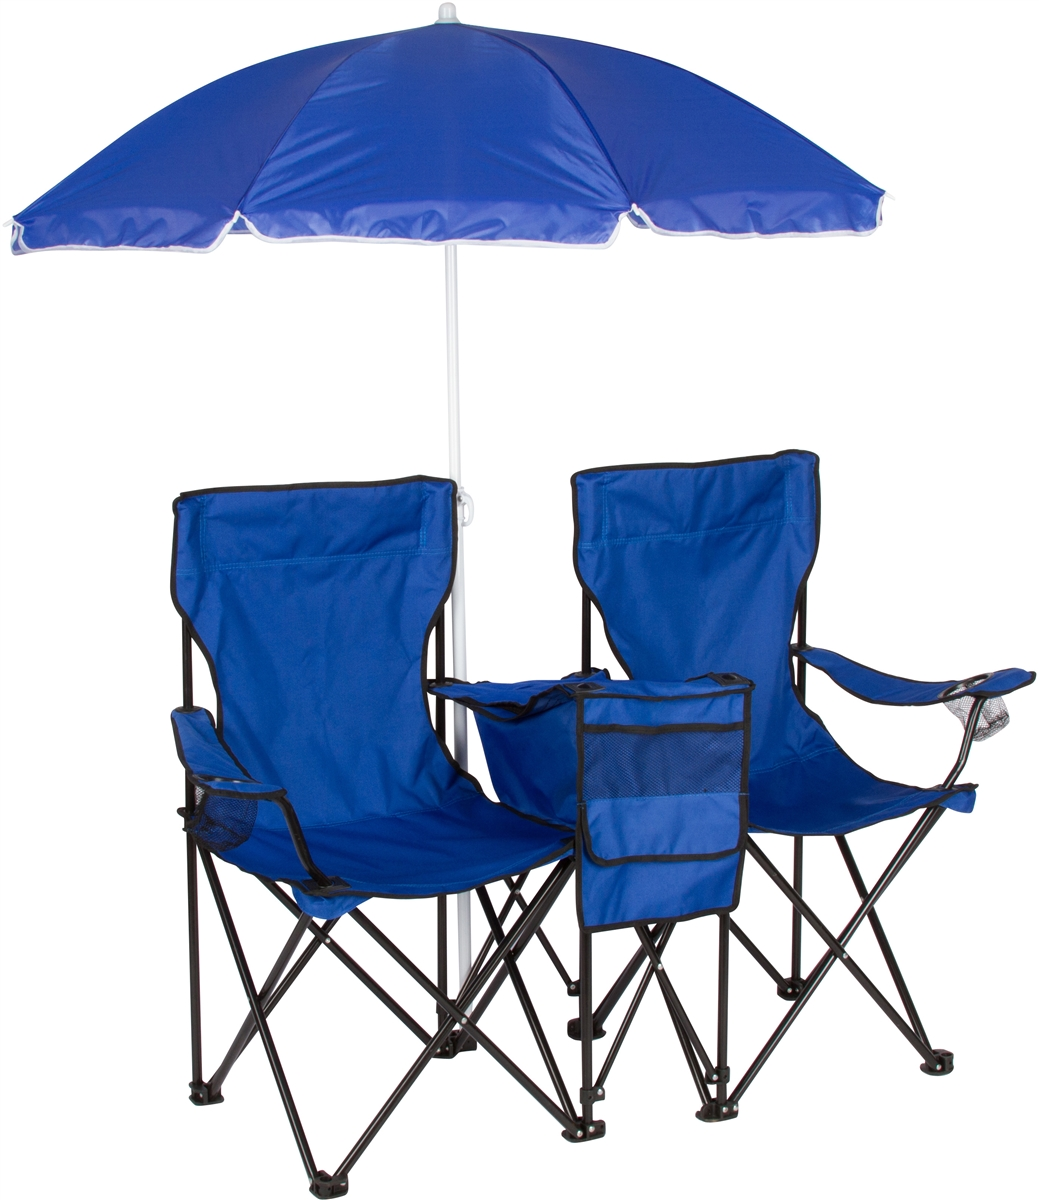 Camping chairs with umbrella - Double Folding Camp And Beach Chair With Removable Umbrella And Cooler By Trademark Innovations Blue